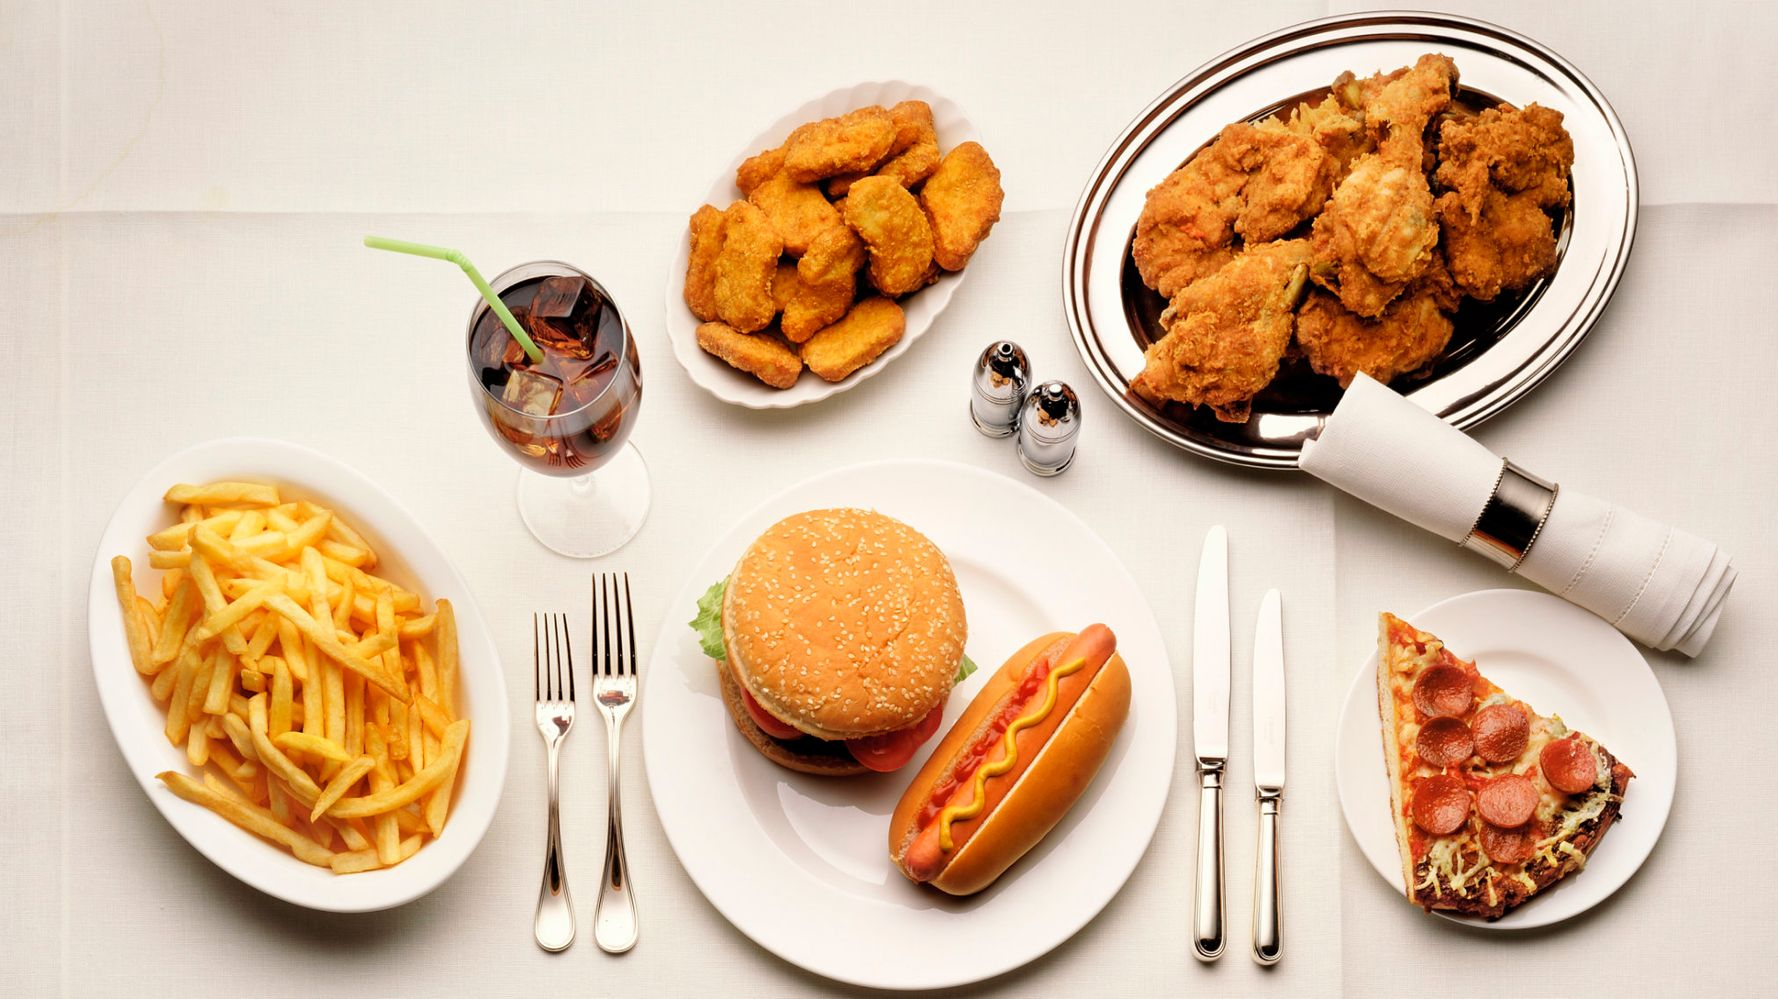 Junk Food Can Cause Similar Amount Of Kidney Damage As Diabetes, Study  Suggests | HuffPost UK Life